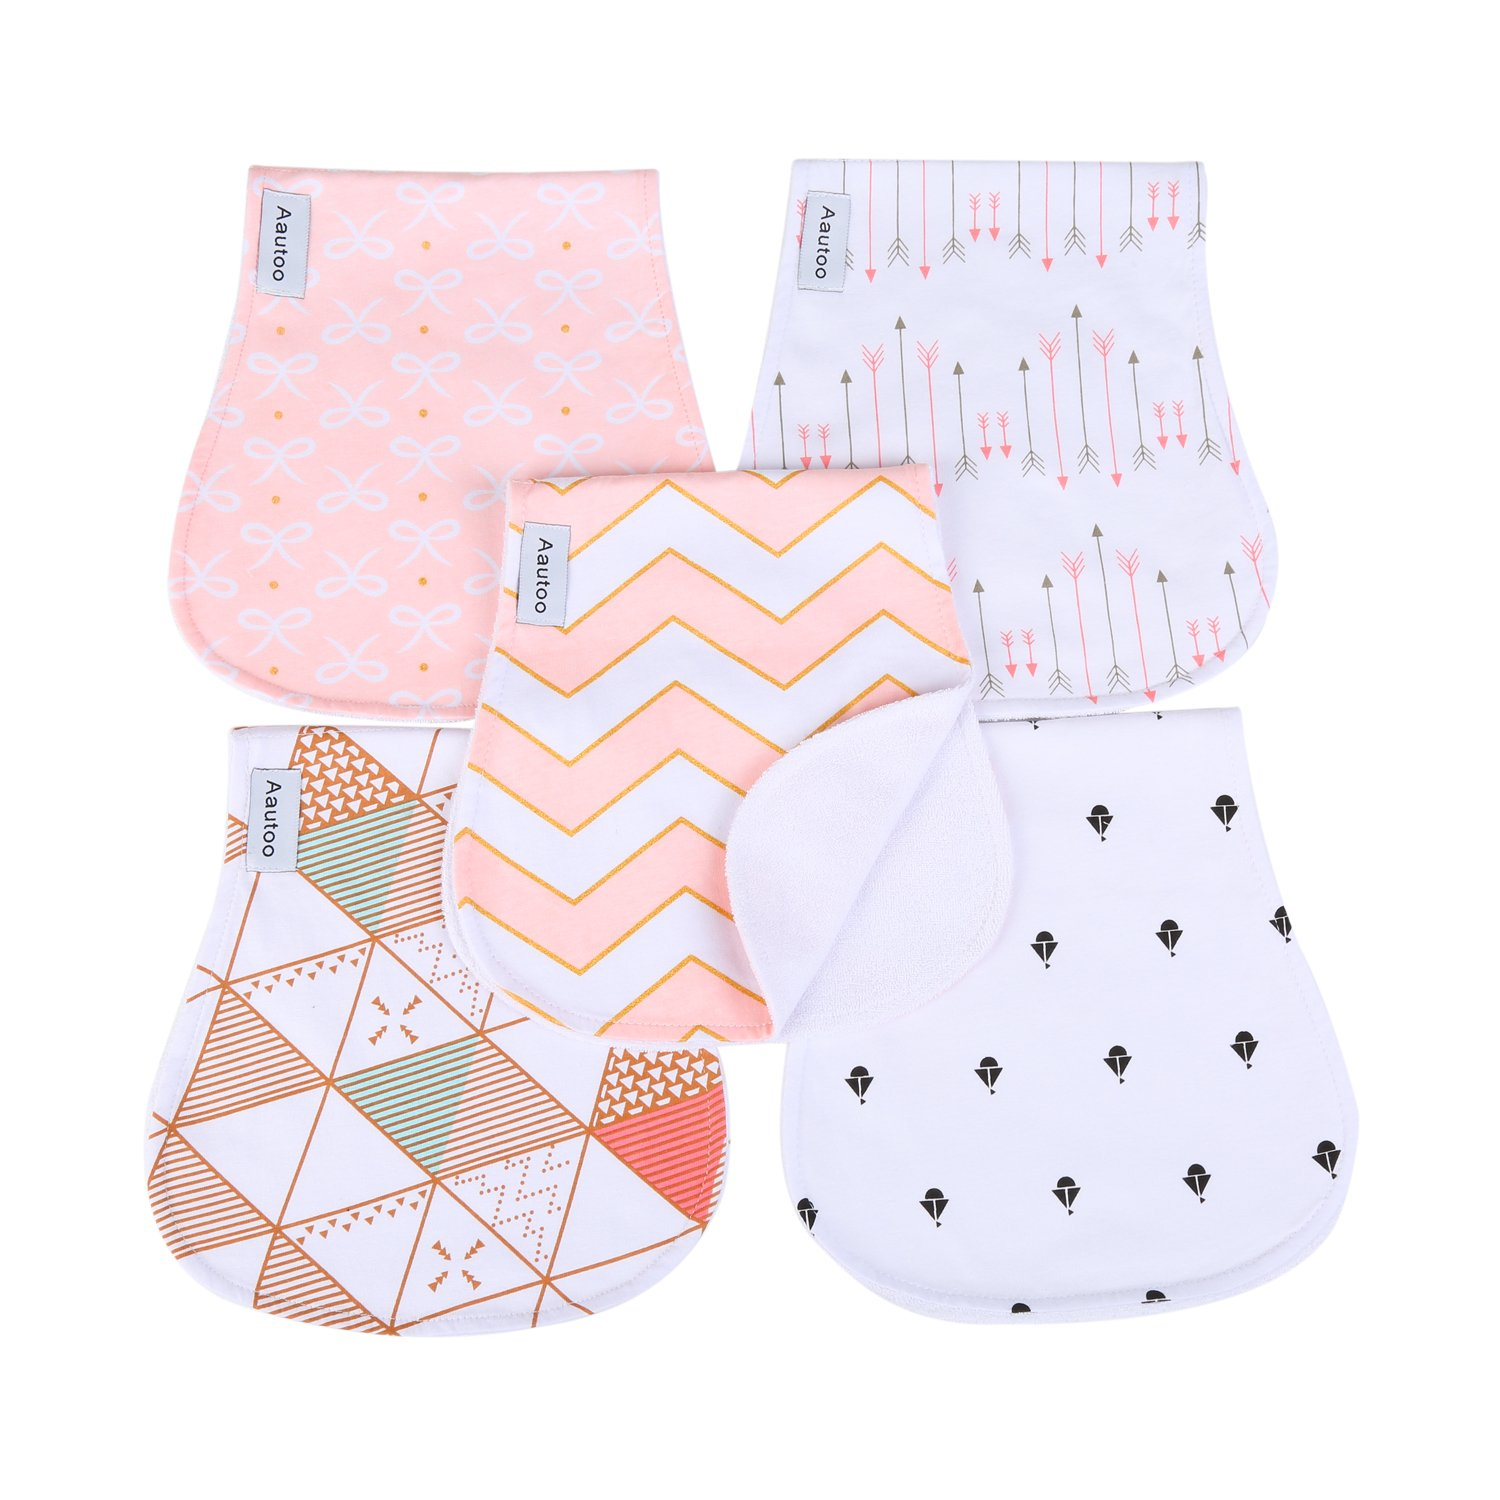 Baby Burp Cloths for Girls 5 Pack Burp Cloths Towel Burping Rags for Babies Newborns Baby Shower 100% Super Absorbent Organic Cotton Soft Triple Layer by Aautoo